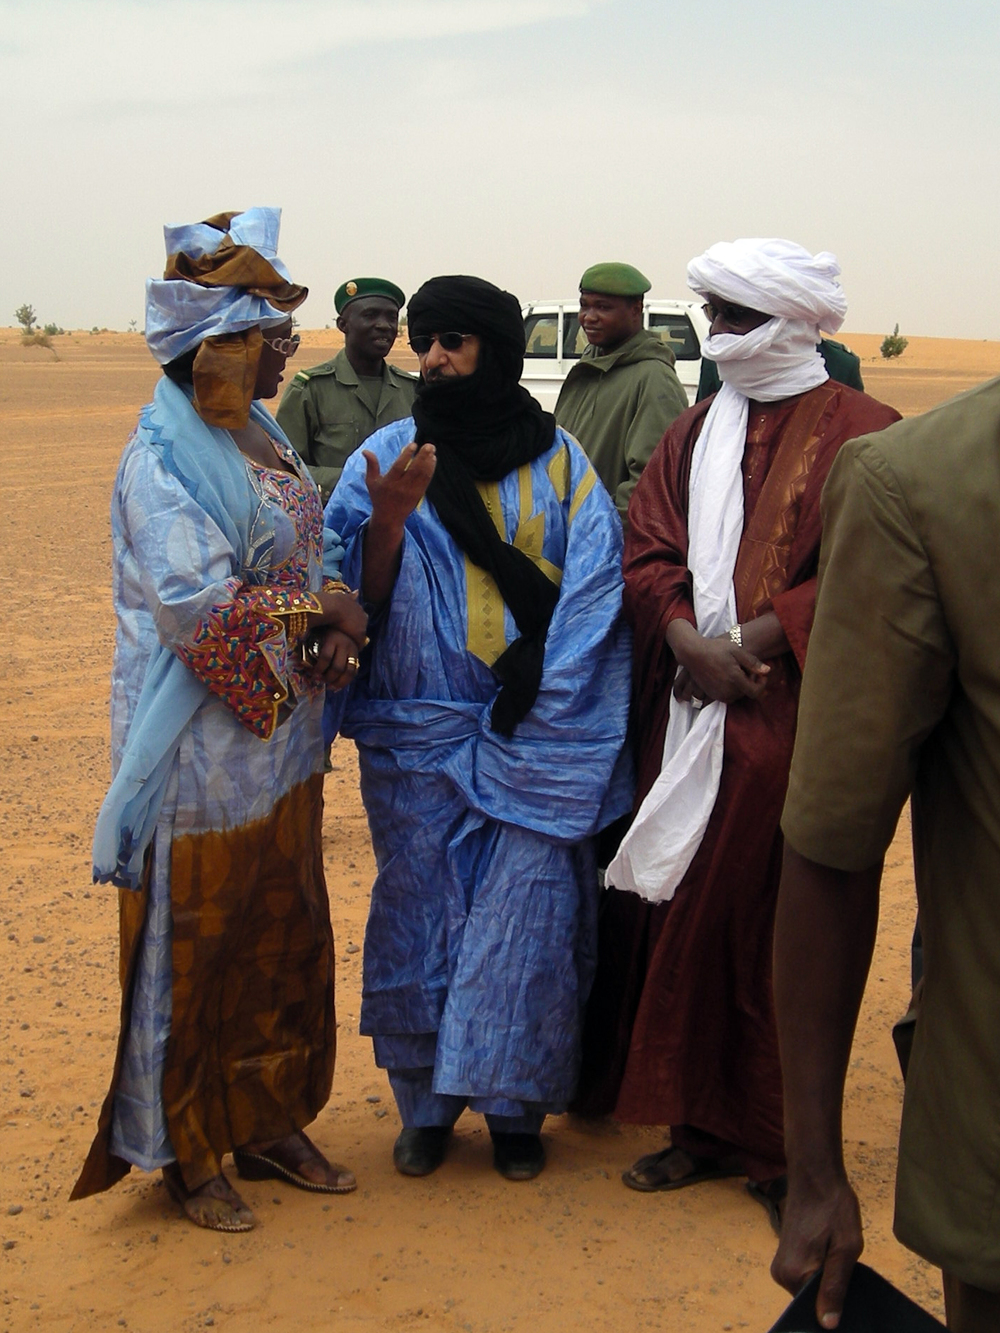 On our way to the festival in Bourem. Minister of culture El Mokhtar and Madame Toure, Jan 2011.